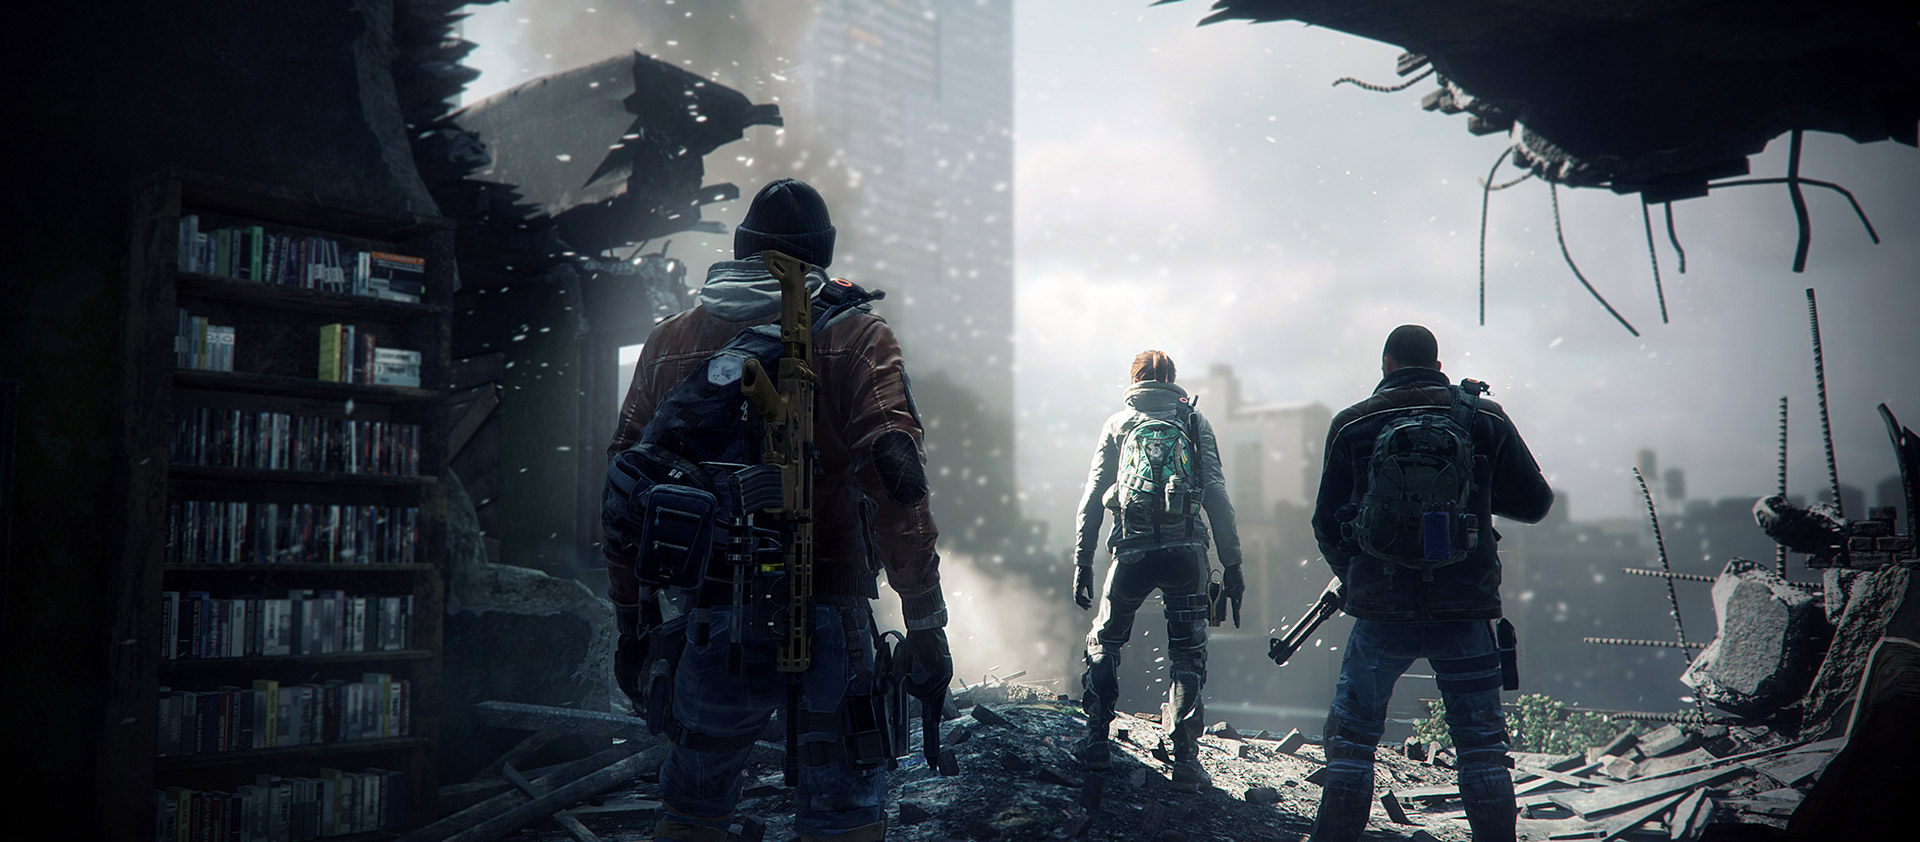 The Division's first free add-on hits April 12, adds new endgame raid and loot-trading